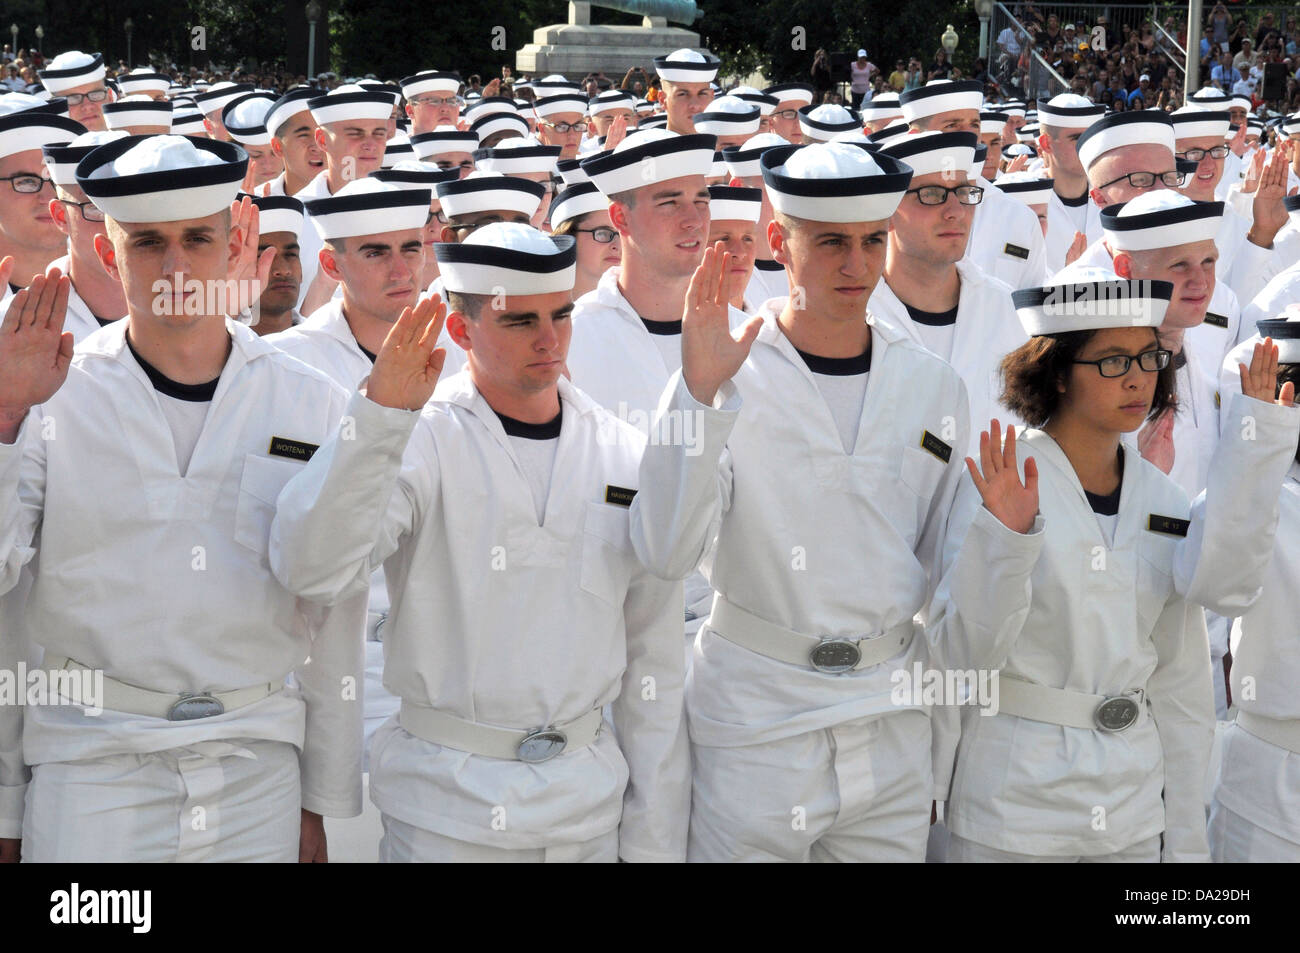 midshipmen from the us naval academy are sworn in during induction